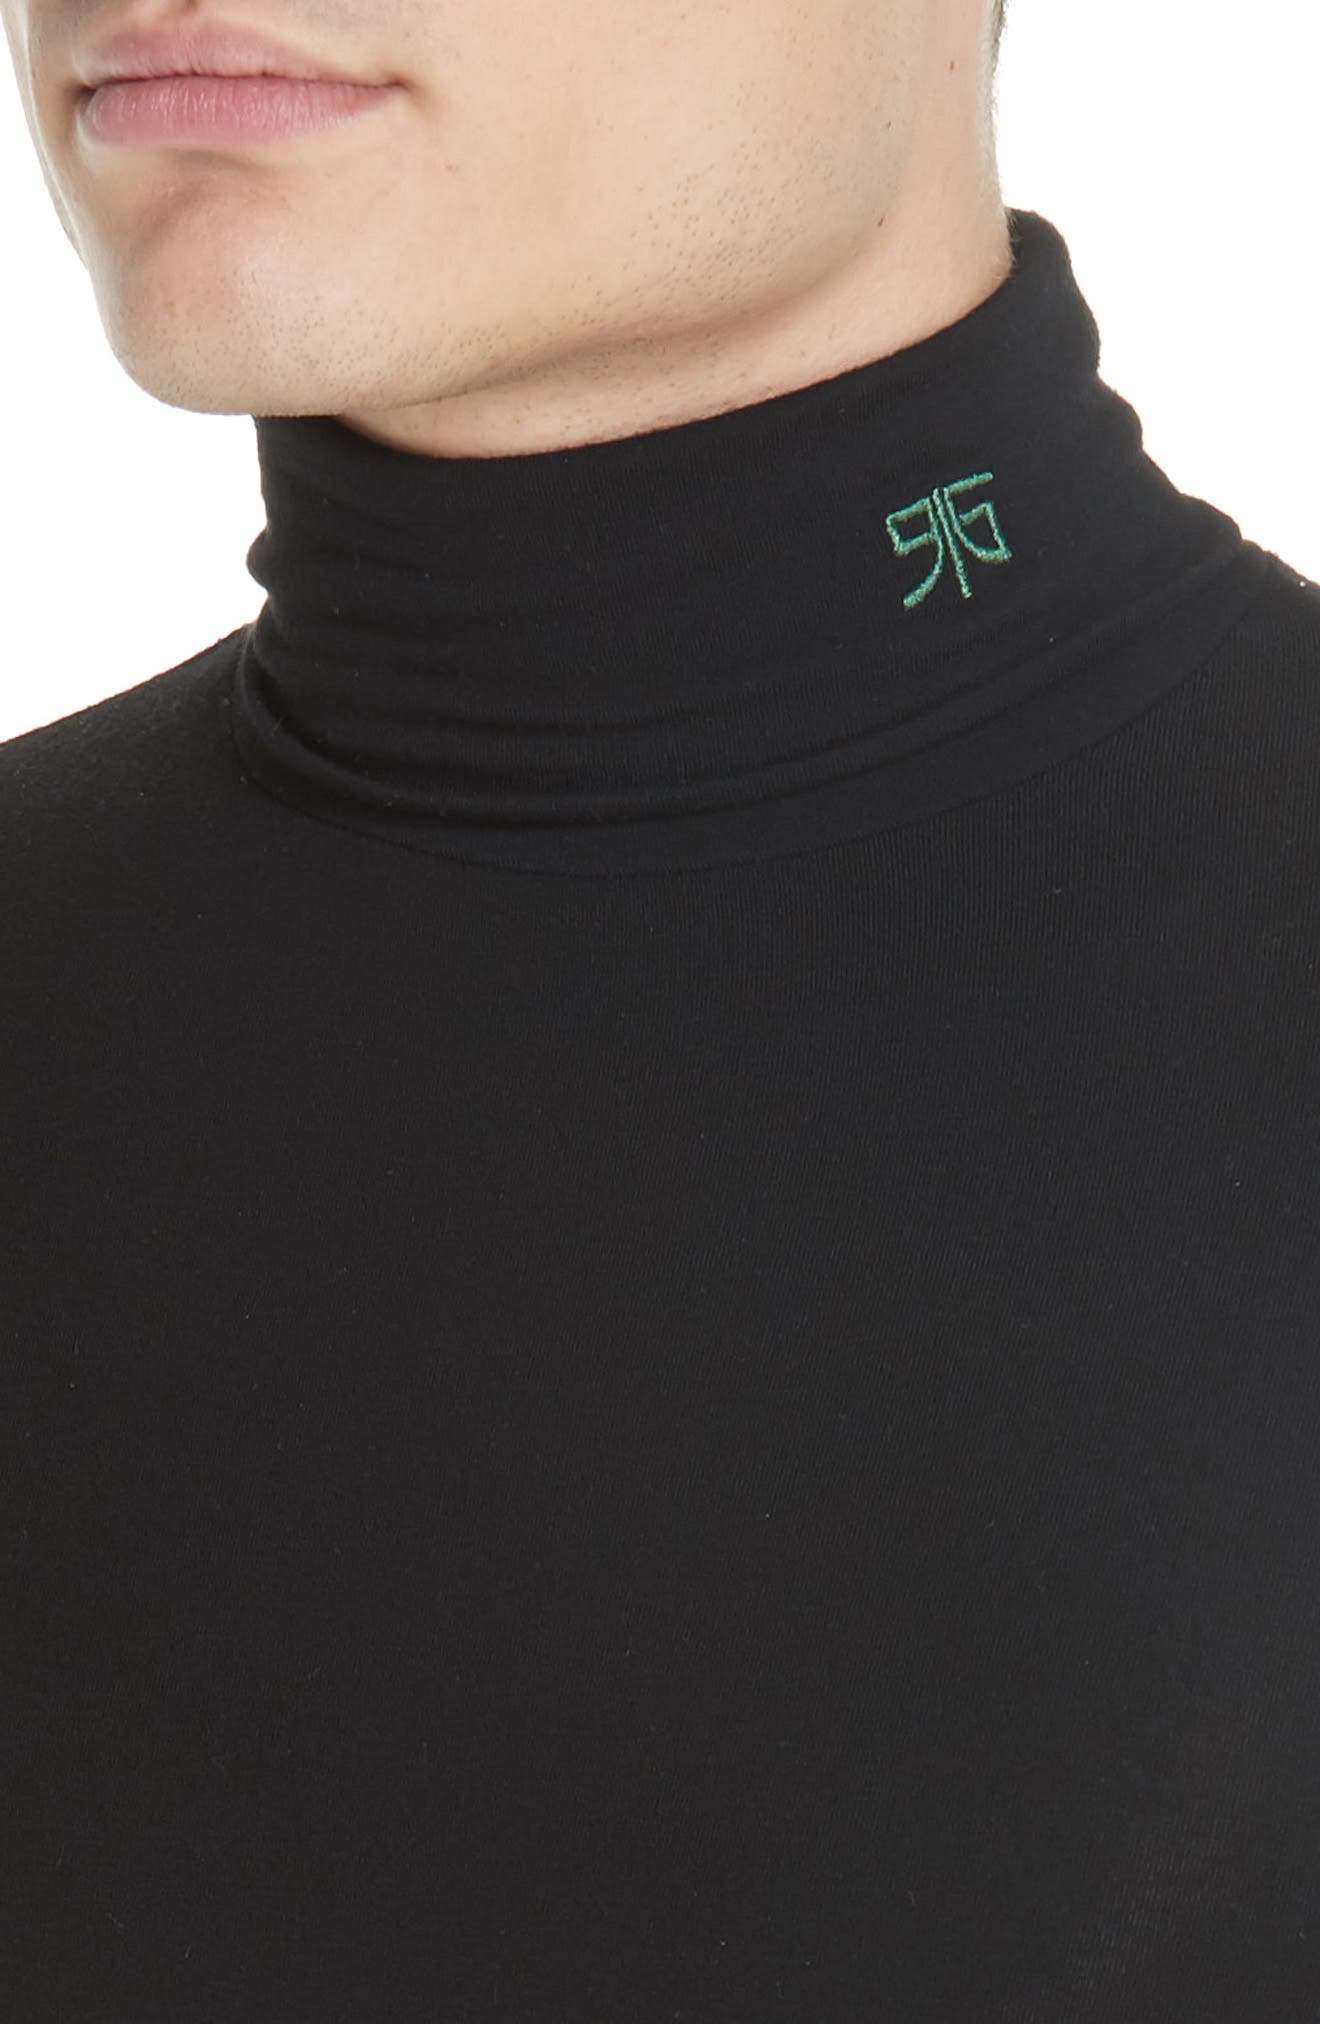 Turtleneck Sweater,                             Alternate thumbnail 4, color,                             BLACK